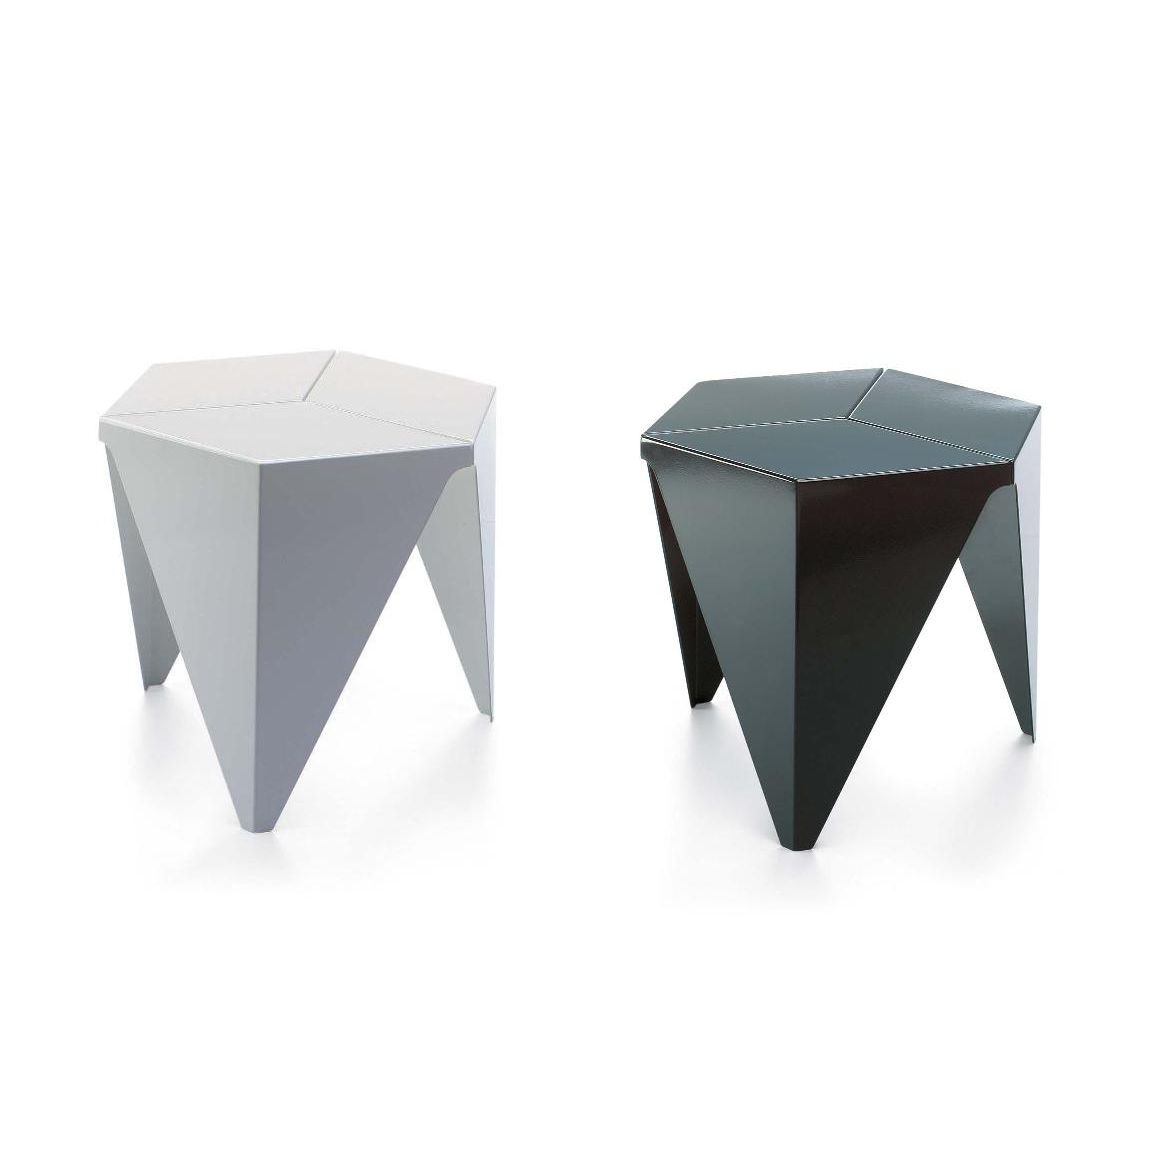 Bien-aimé Contemporary side table / aluminum / hexagonal / by Isamu Noguchi  QY06